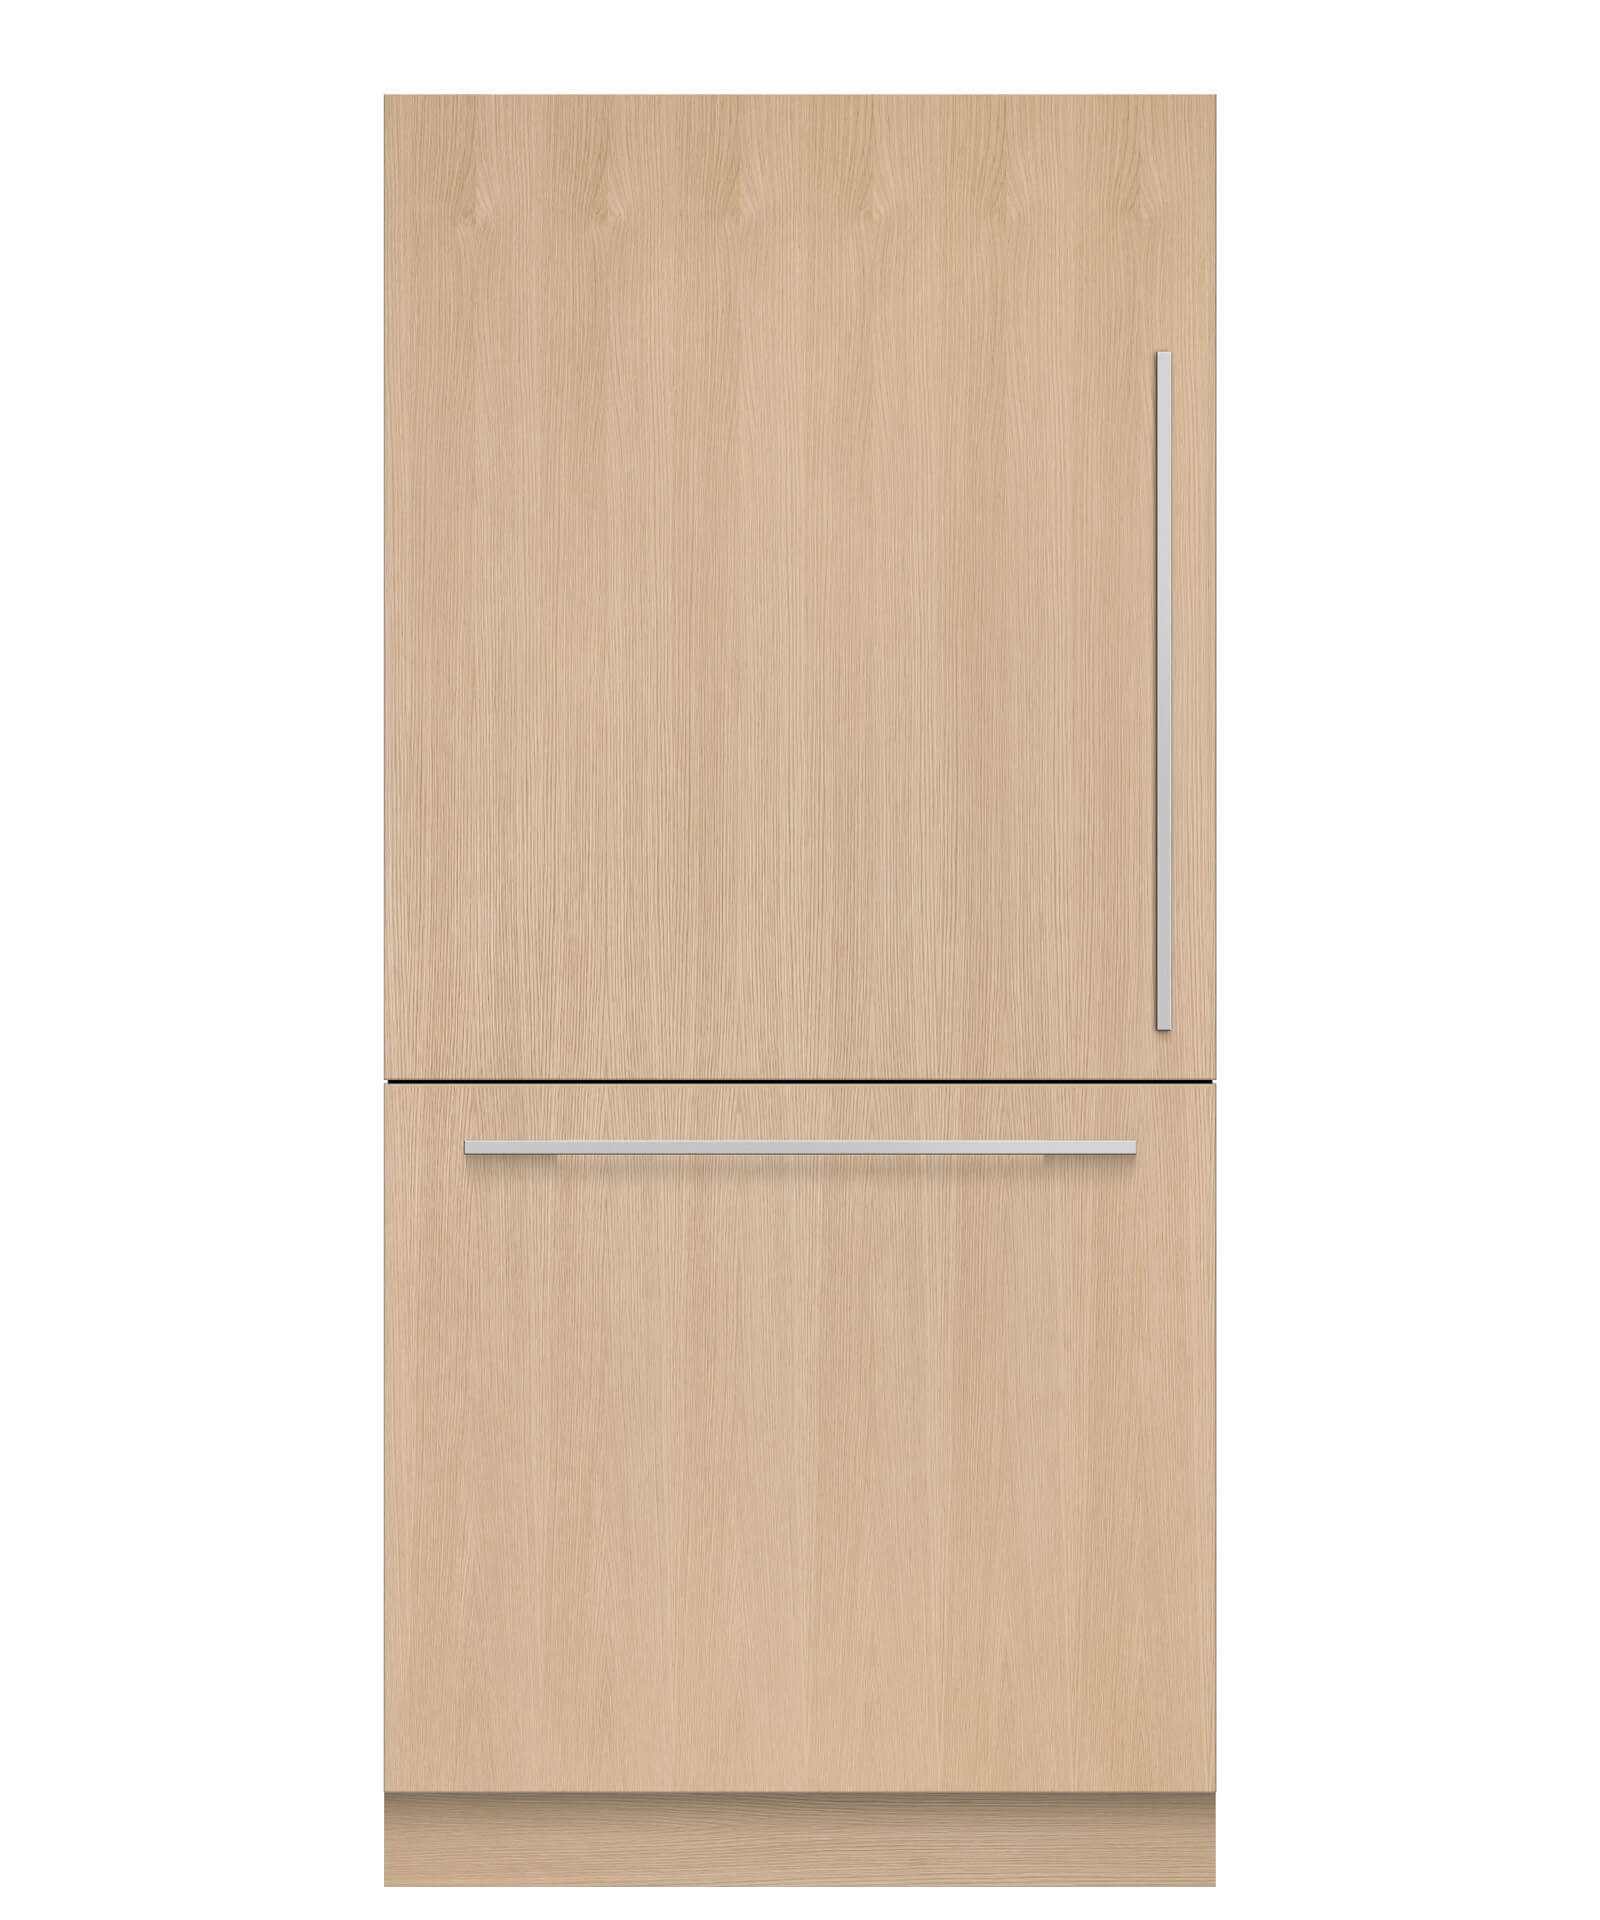 Fisher and Paykel Integrated Refrigerator 16.8cu ft, Ice